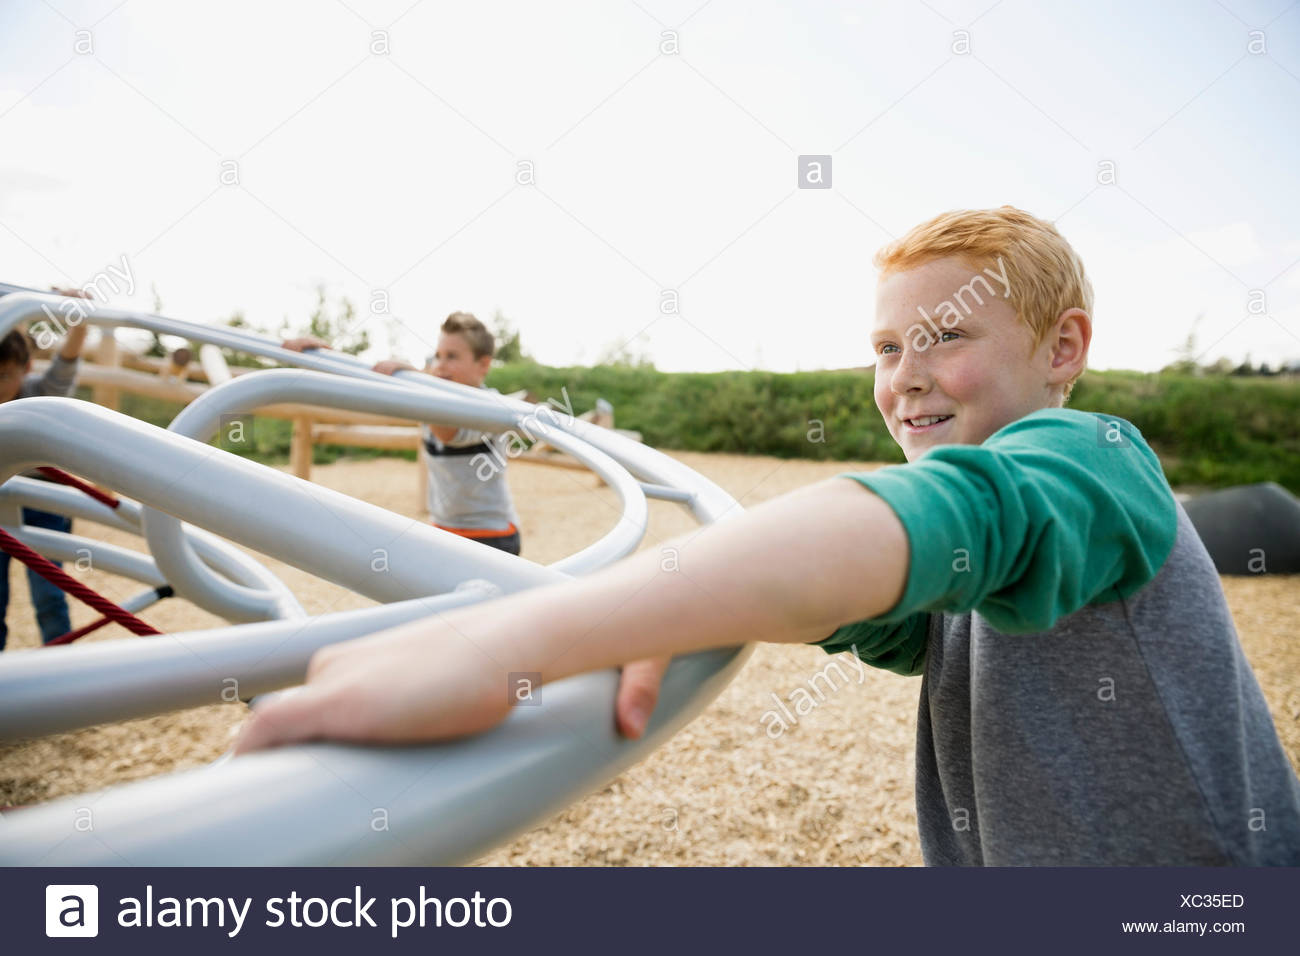 Boy playing with friends at playground - Stock Image